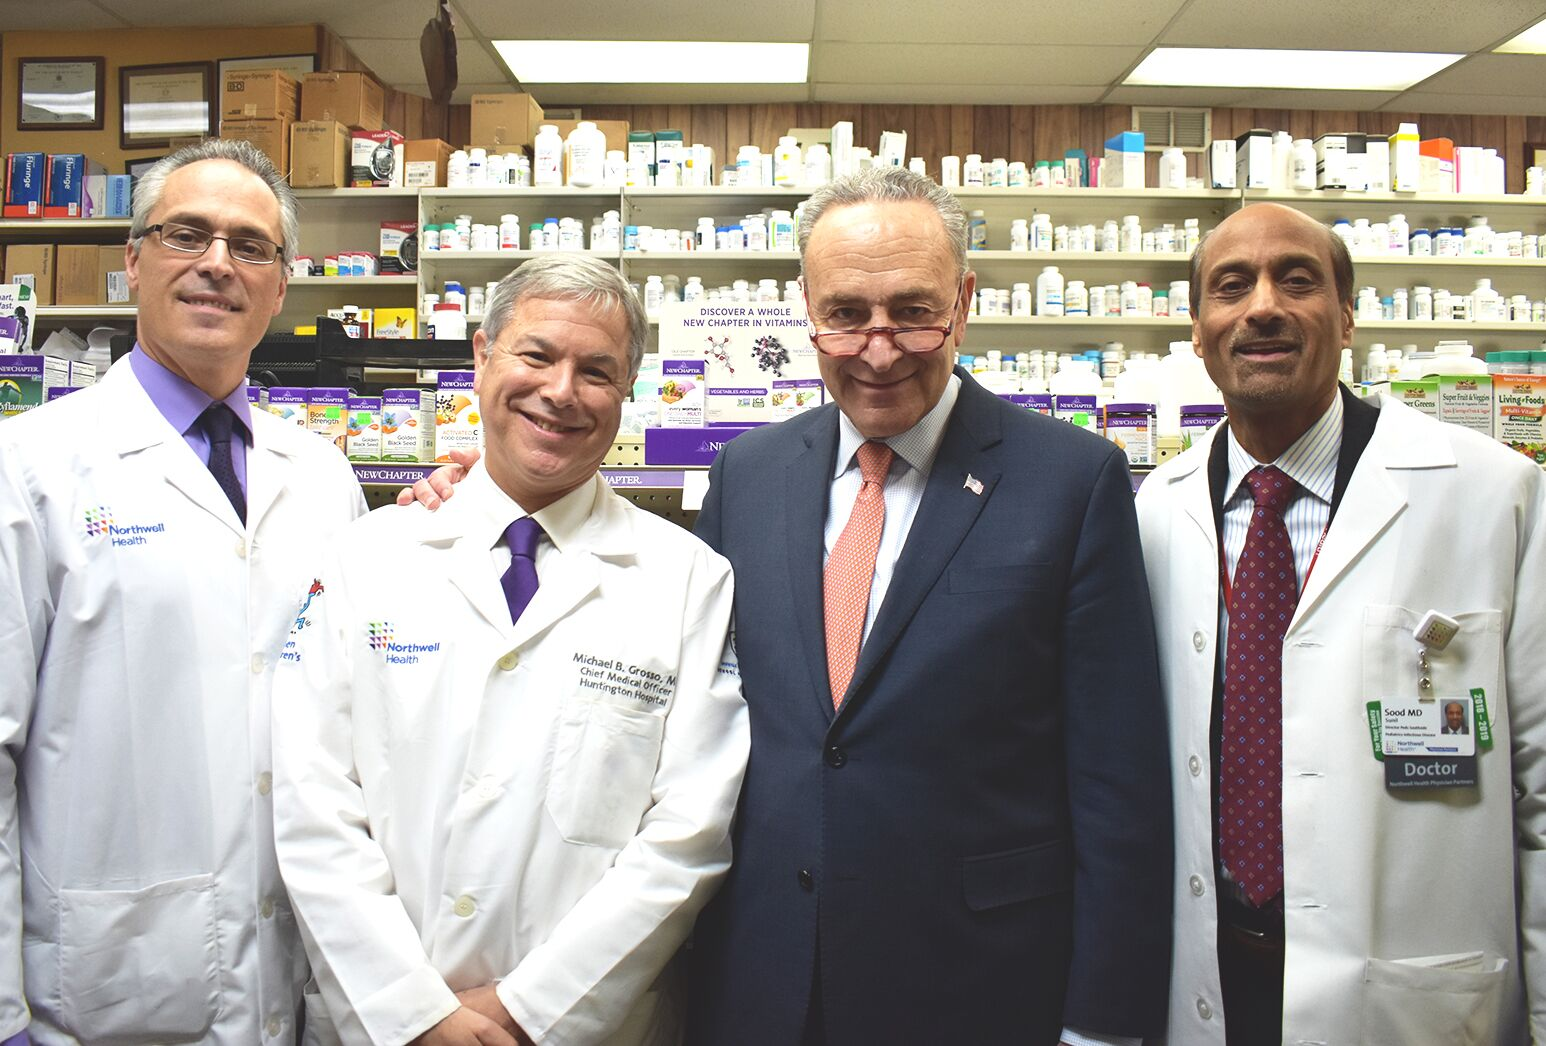 From left: Northwell Health pharmacist Julio Viola, Dr. Michael Grosso, Senator Charles Schumer and Dr. Sunil Sood.